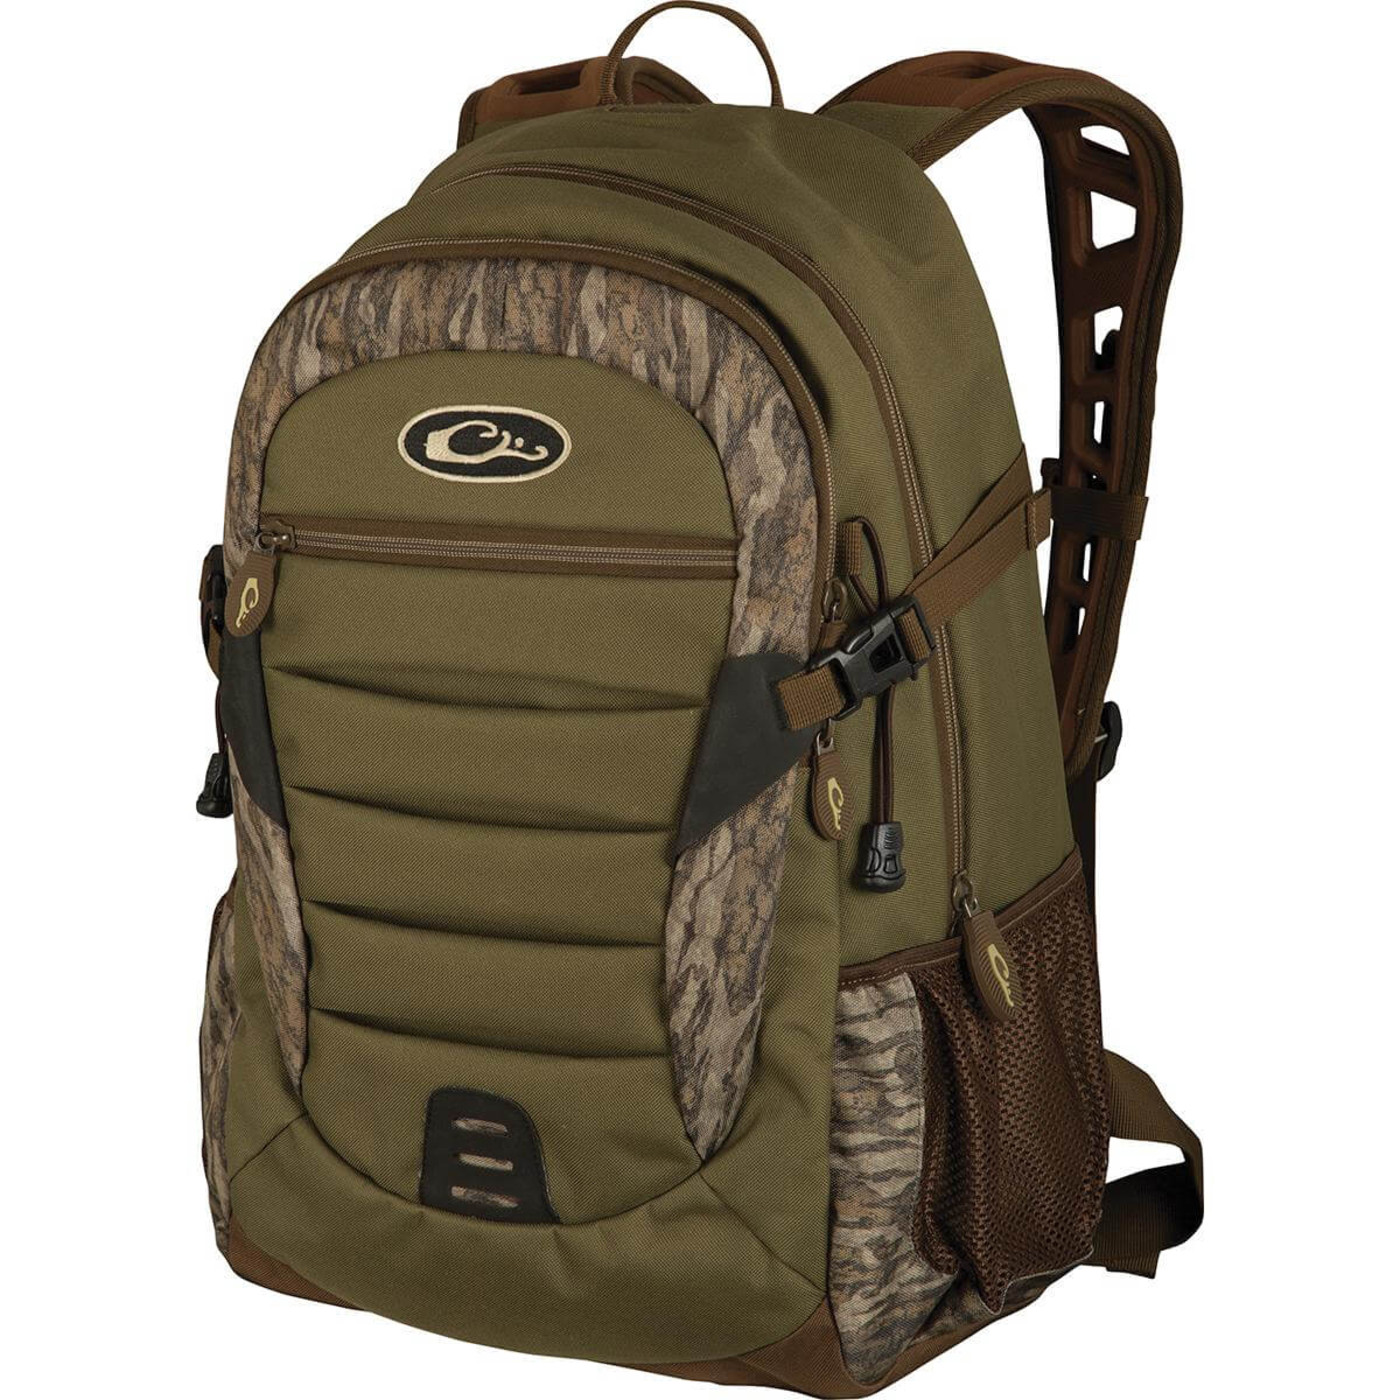 Drake Daypack in Mossy Oak Bottomland Color